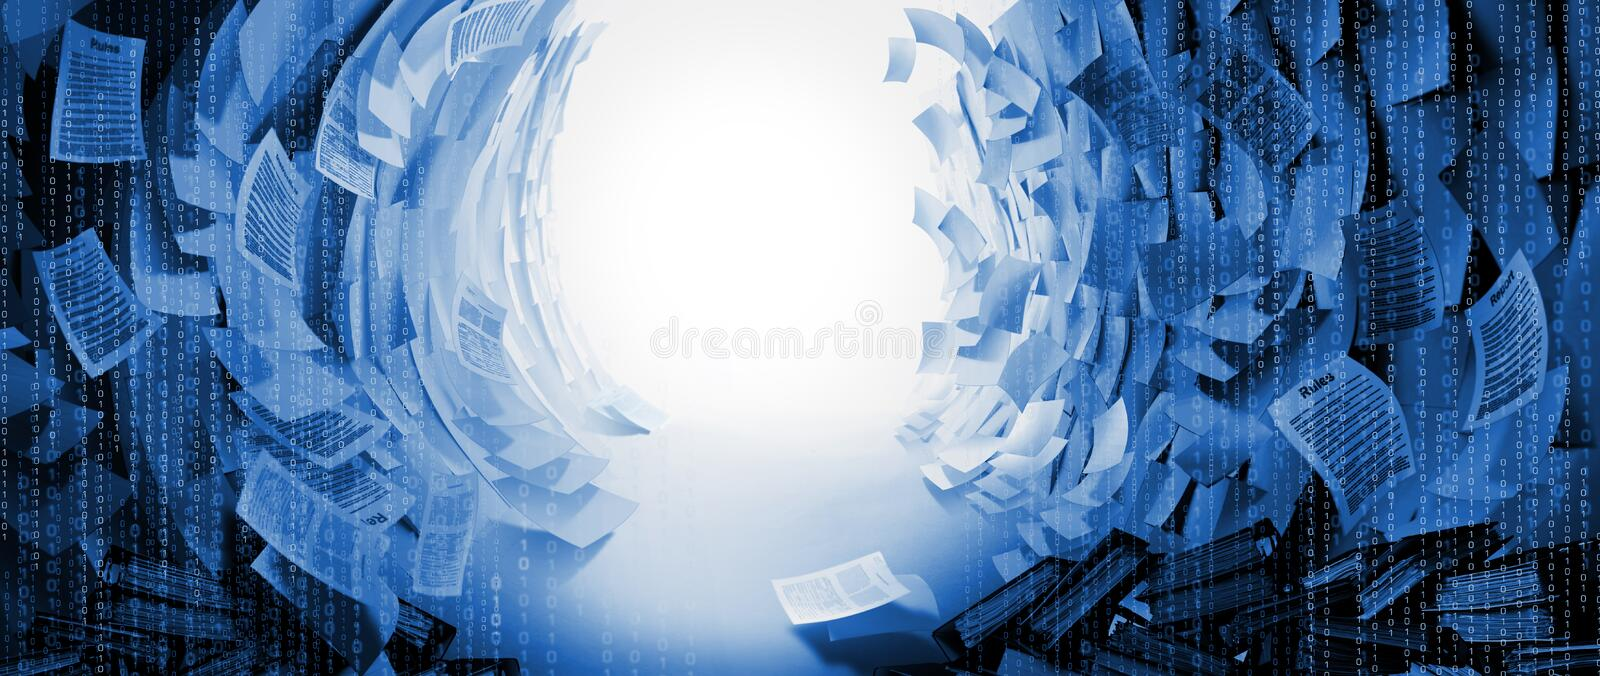 Exit from Obstacle space created by a lot of Business Papers Background stock image